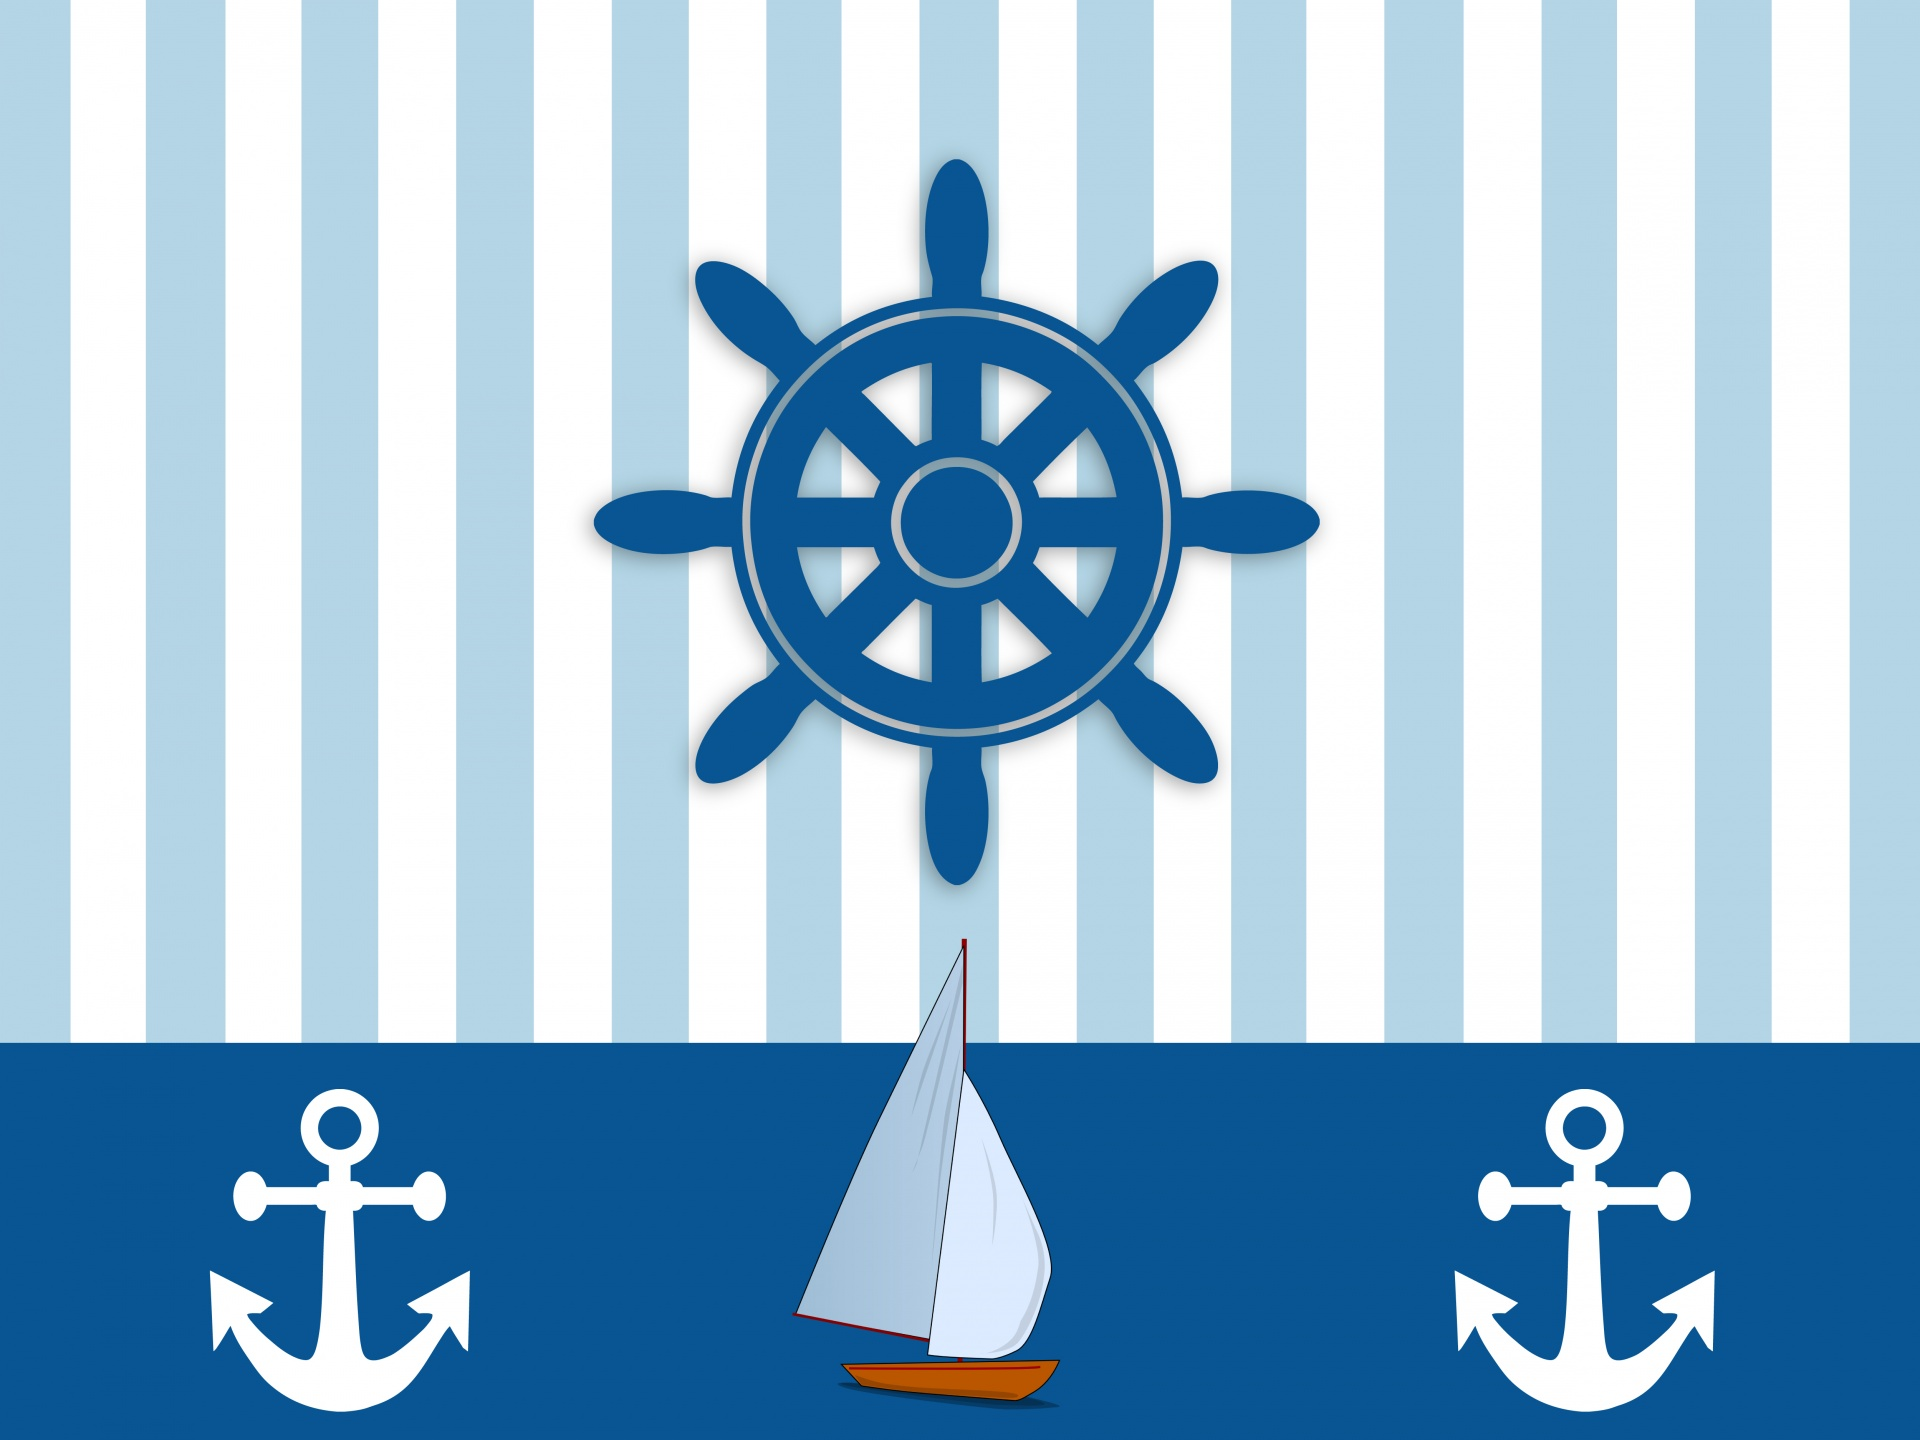 Download Nautical Themed Wallpaper Gallery